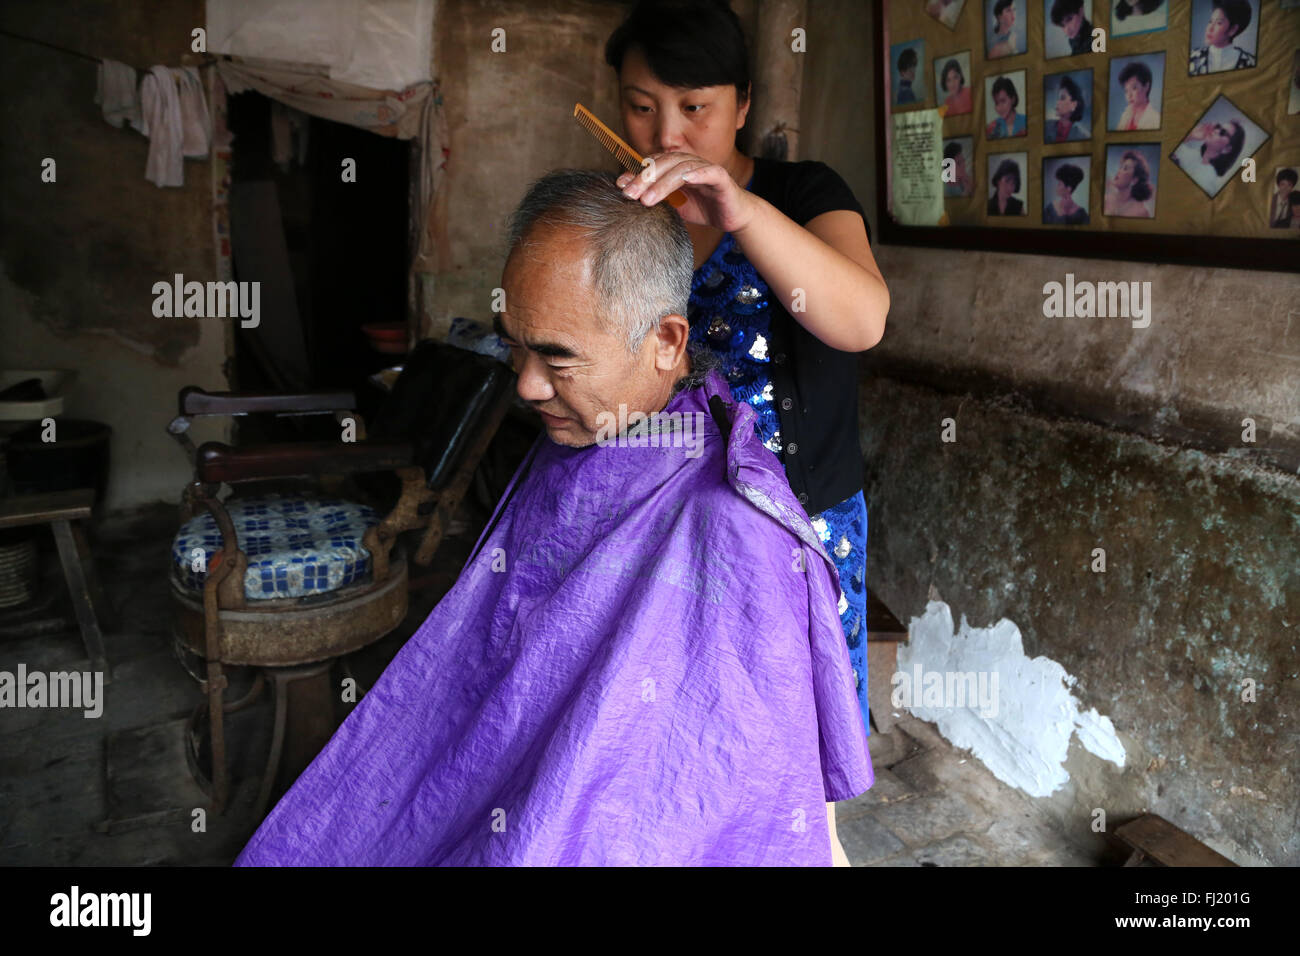 Hairdresser salon in Pingyao , China - Stock Image